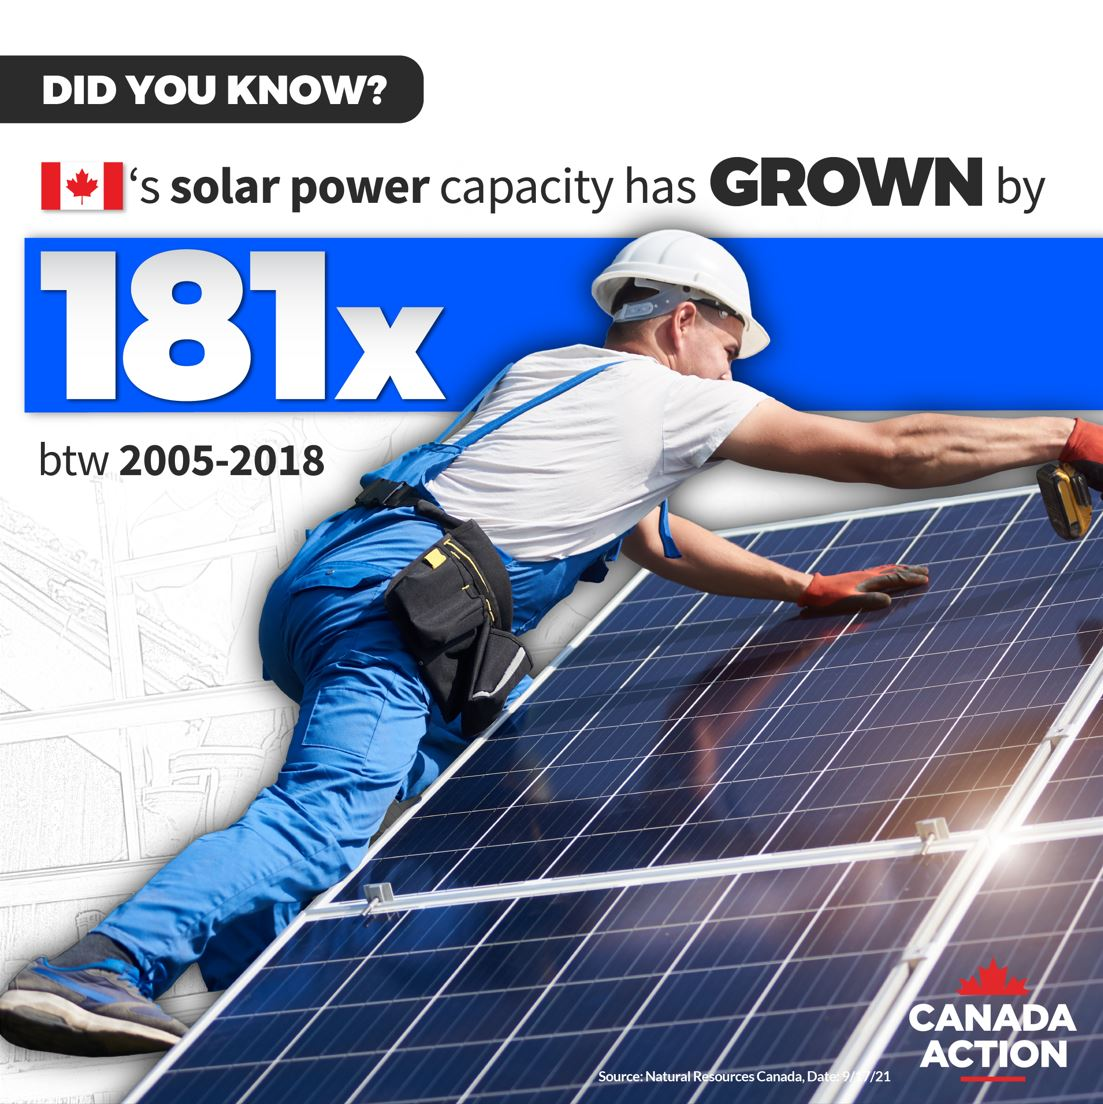 Canada's Solar Capacity has grown by 181 times between 2005-2018 2